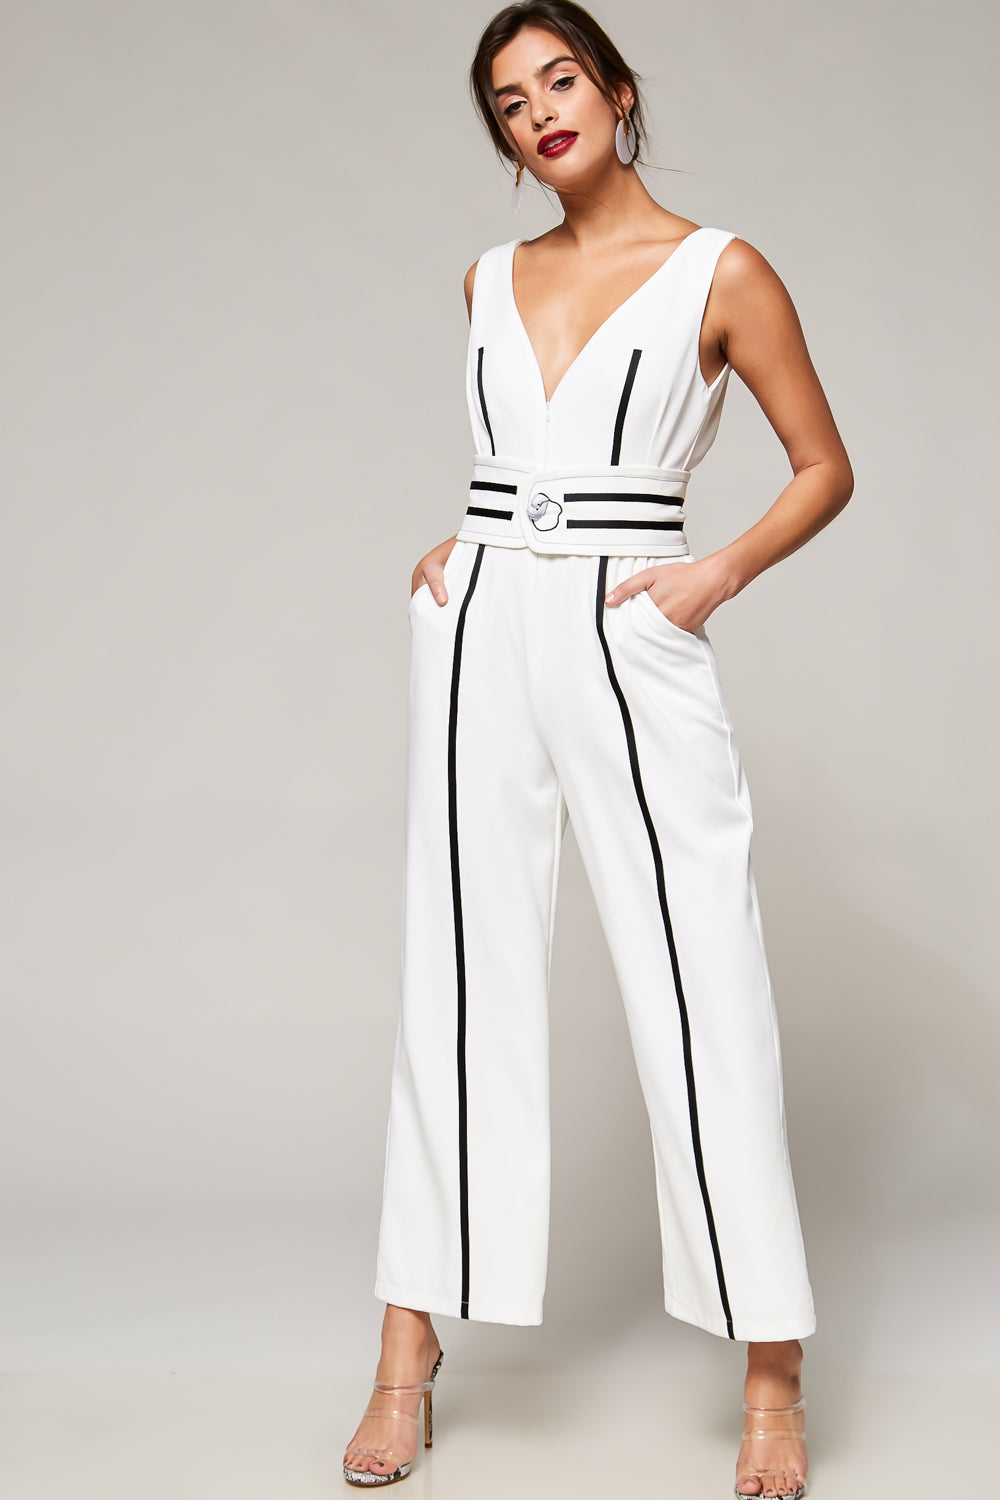 Cash Only Belted Zip-Front Jumpsuit - Geegeebae